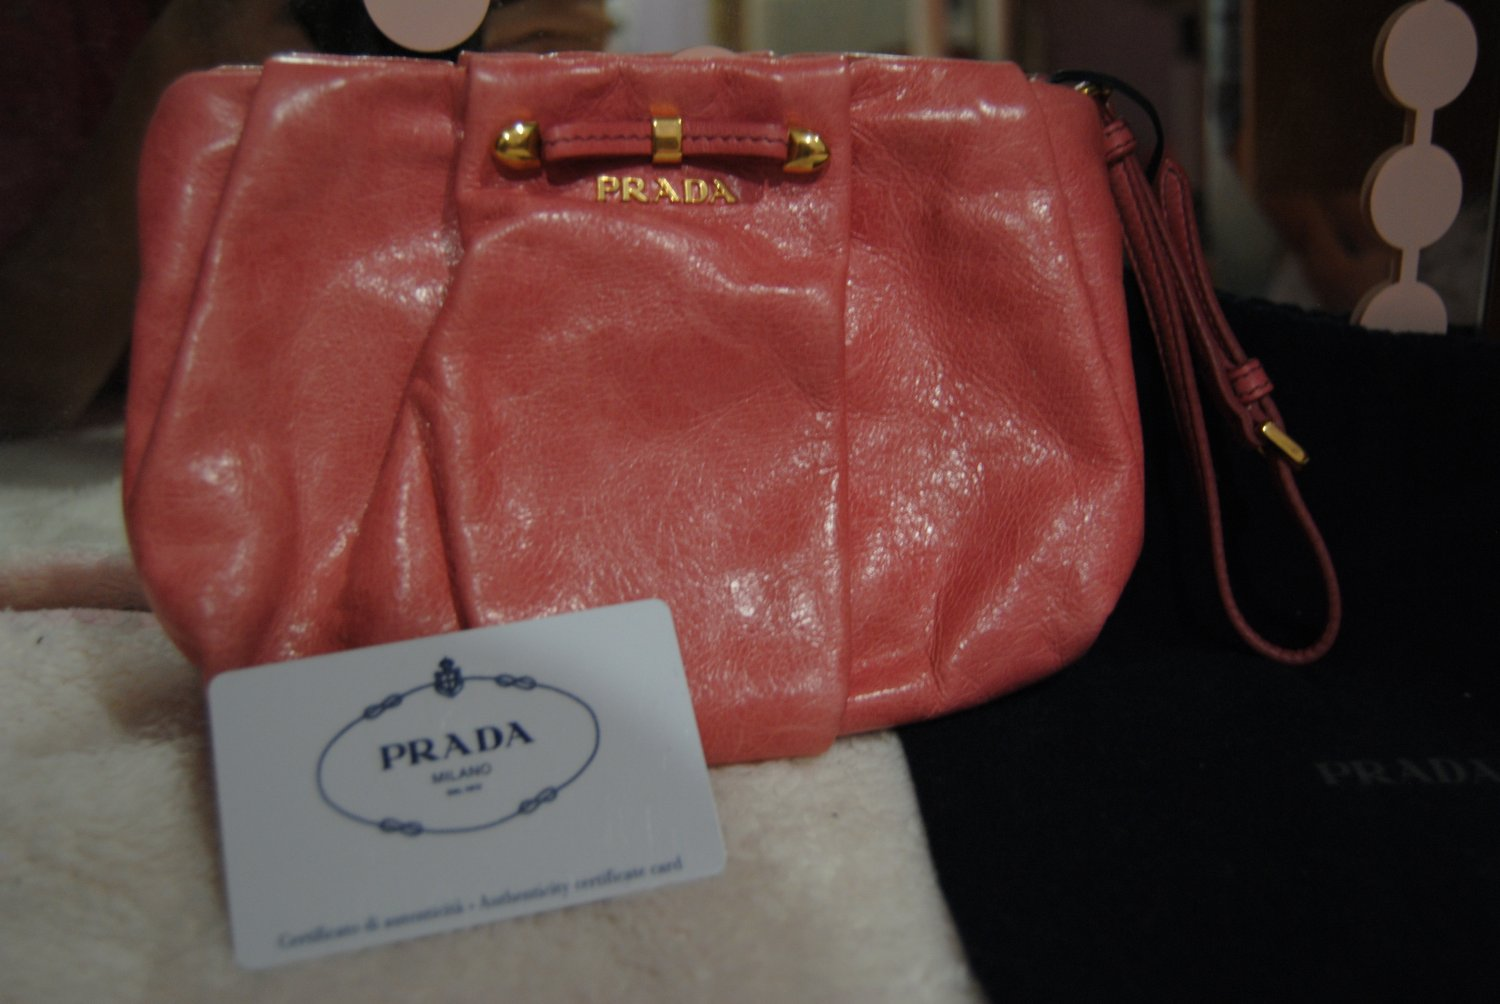 Prada Pink leather clutch